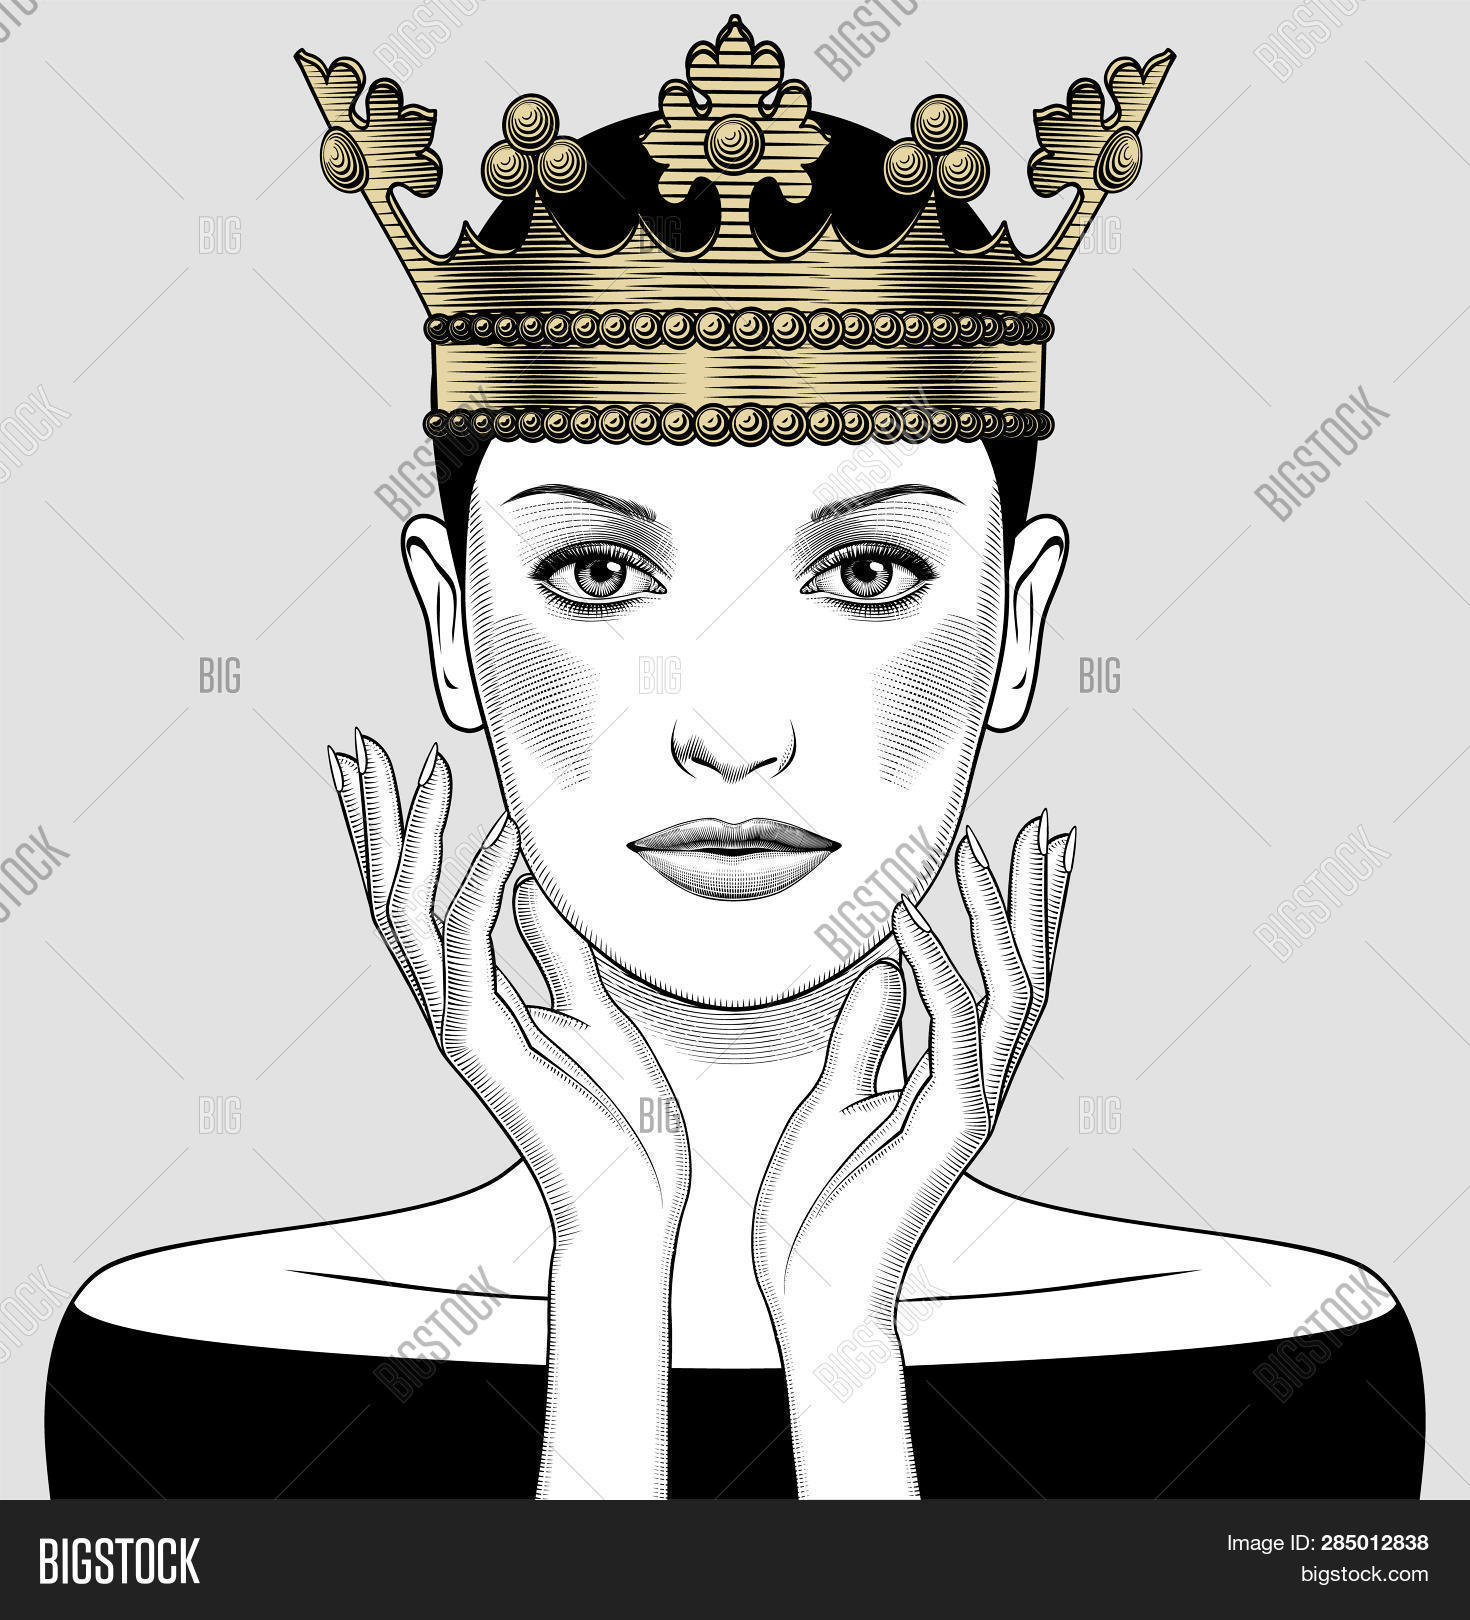 Woman Holding Above Image Photo Free Trial Bigstock Download 1,328 holding crown stock illustrations, vectors & clipart for free or amazingly low rates! woman holding above image photo free